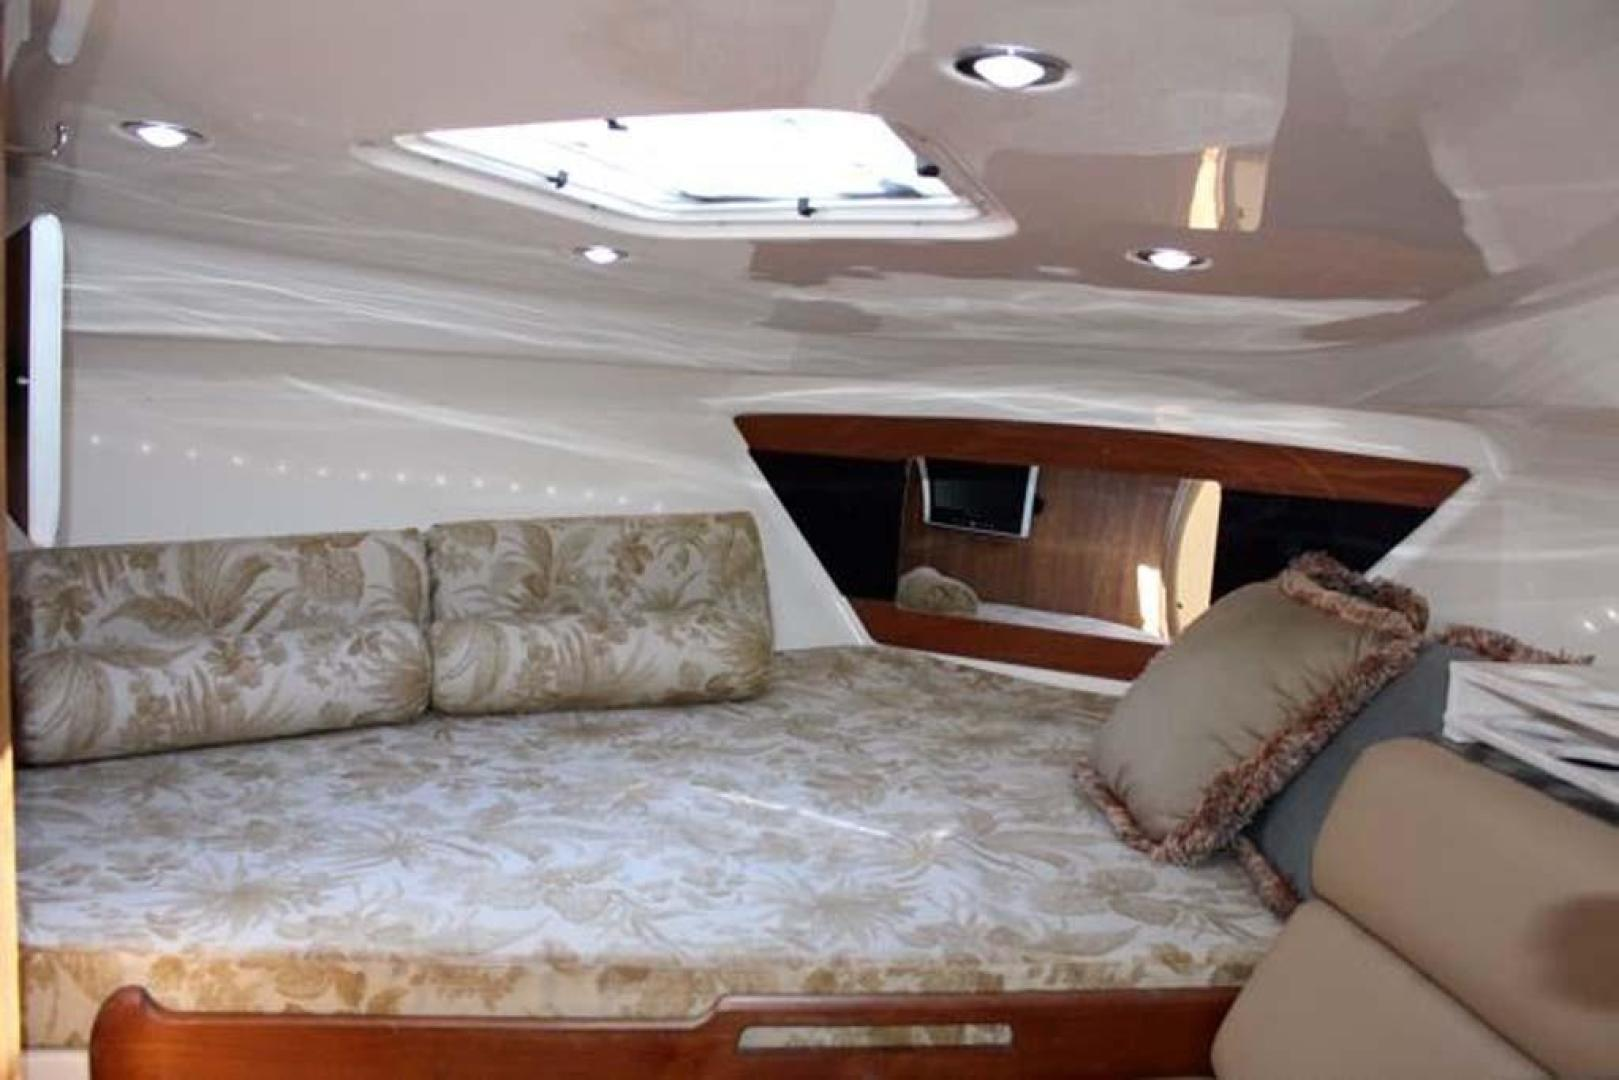 Everglades-35 LX NEW POWER 2010 -Delray Beach-Florida-United States-Cabin-923991 | Thumbnail